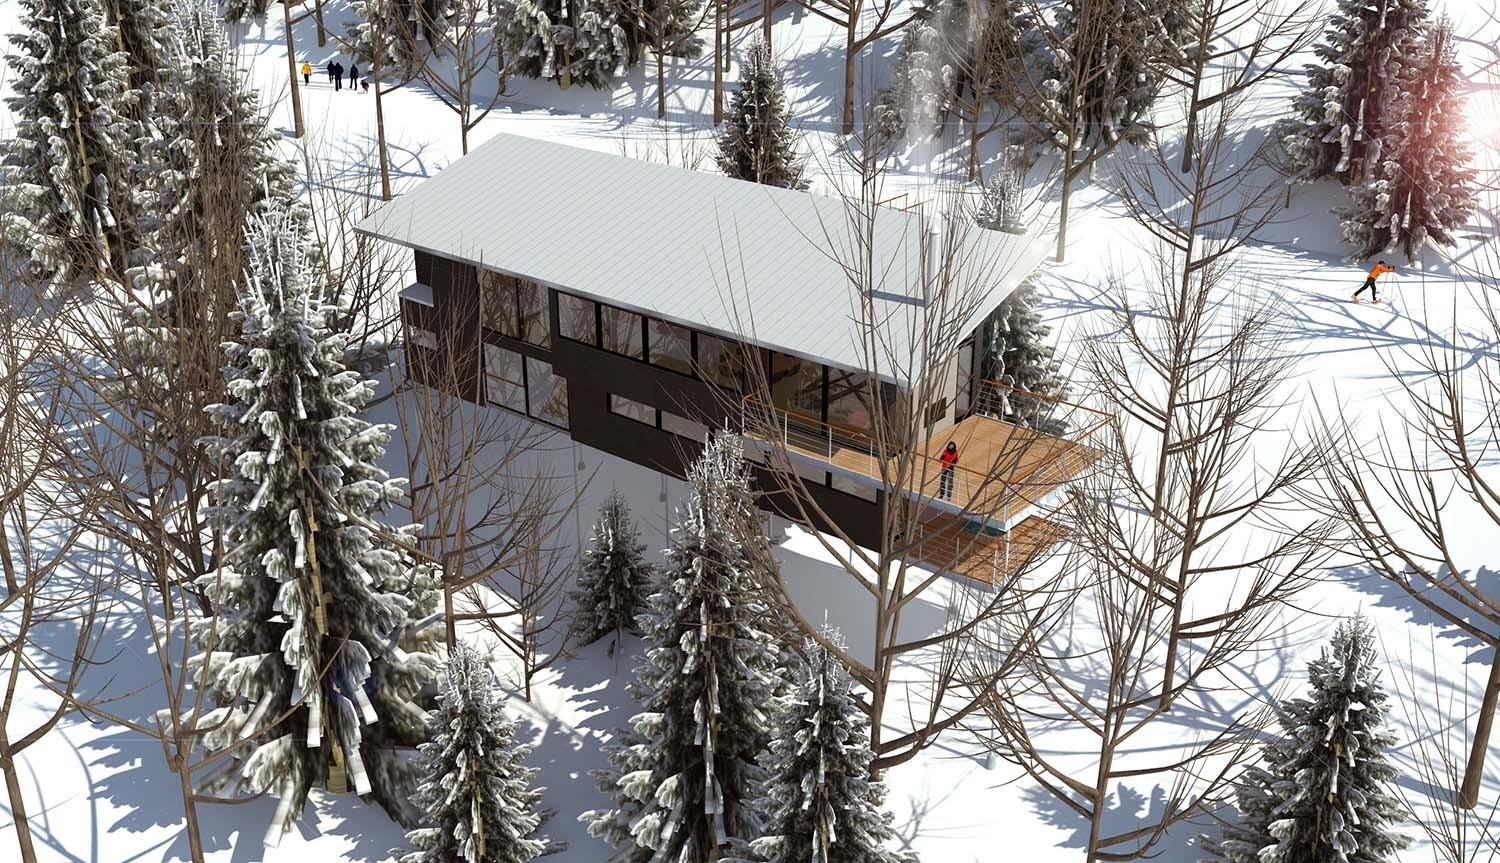 Modern Ski Chalet Nestled Snowy Slopes